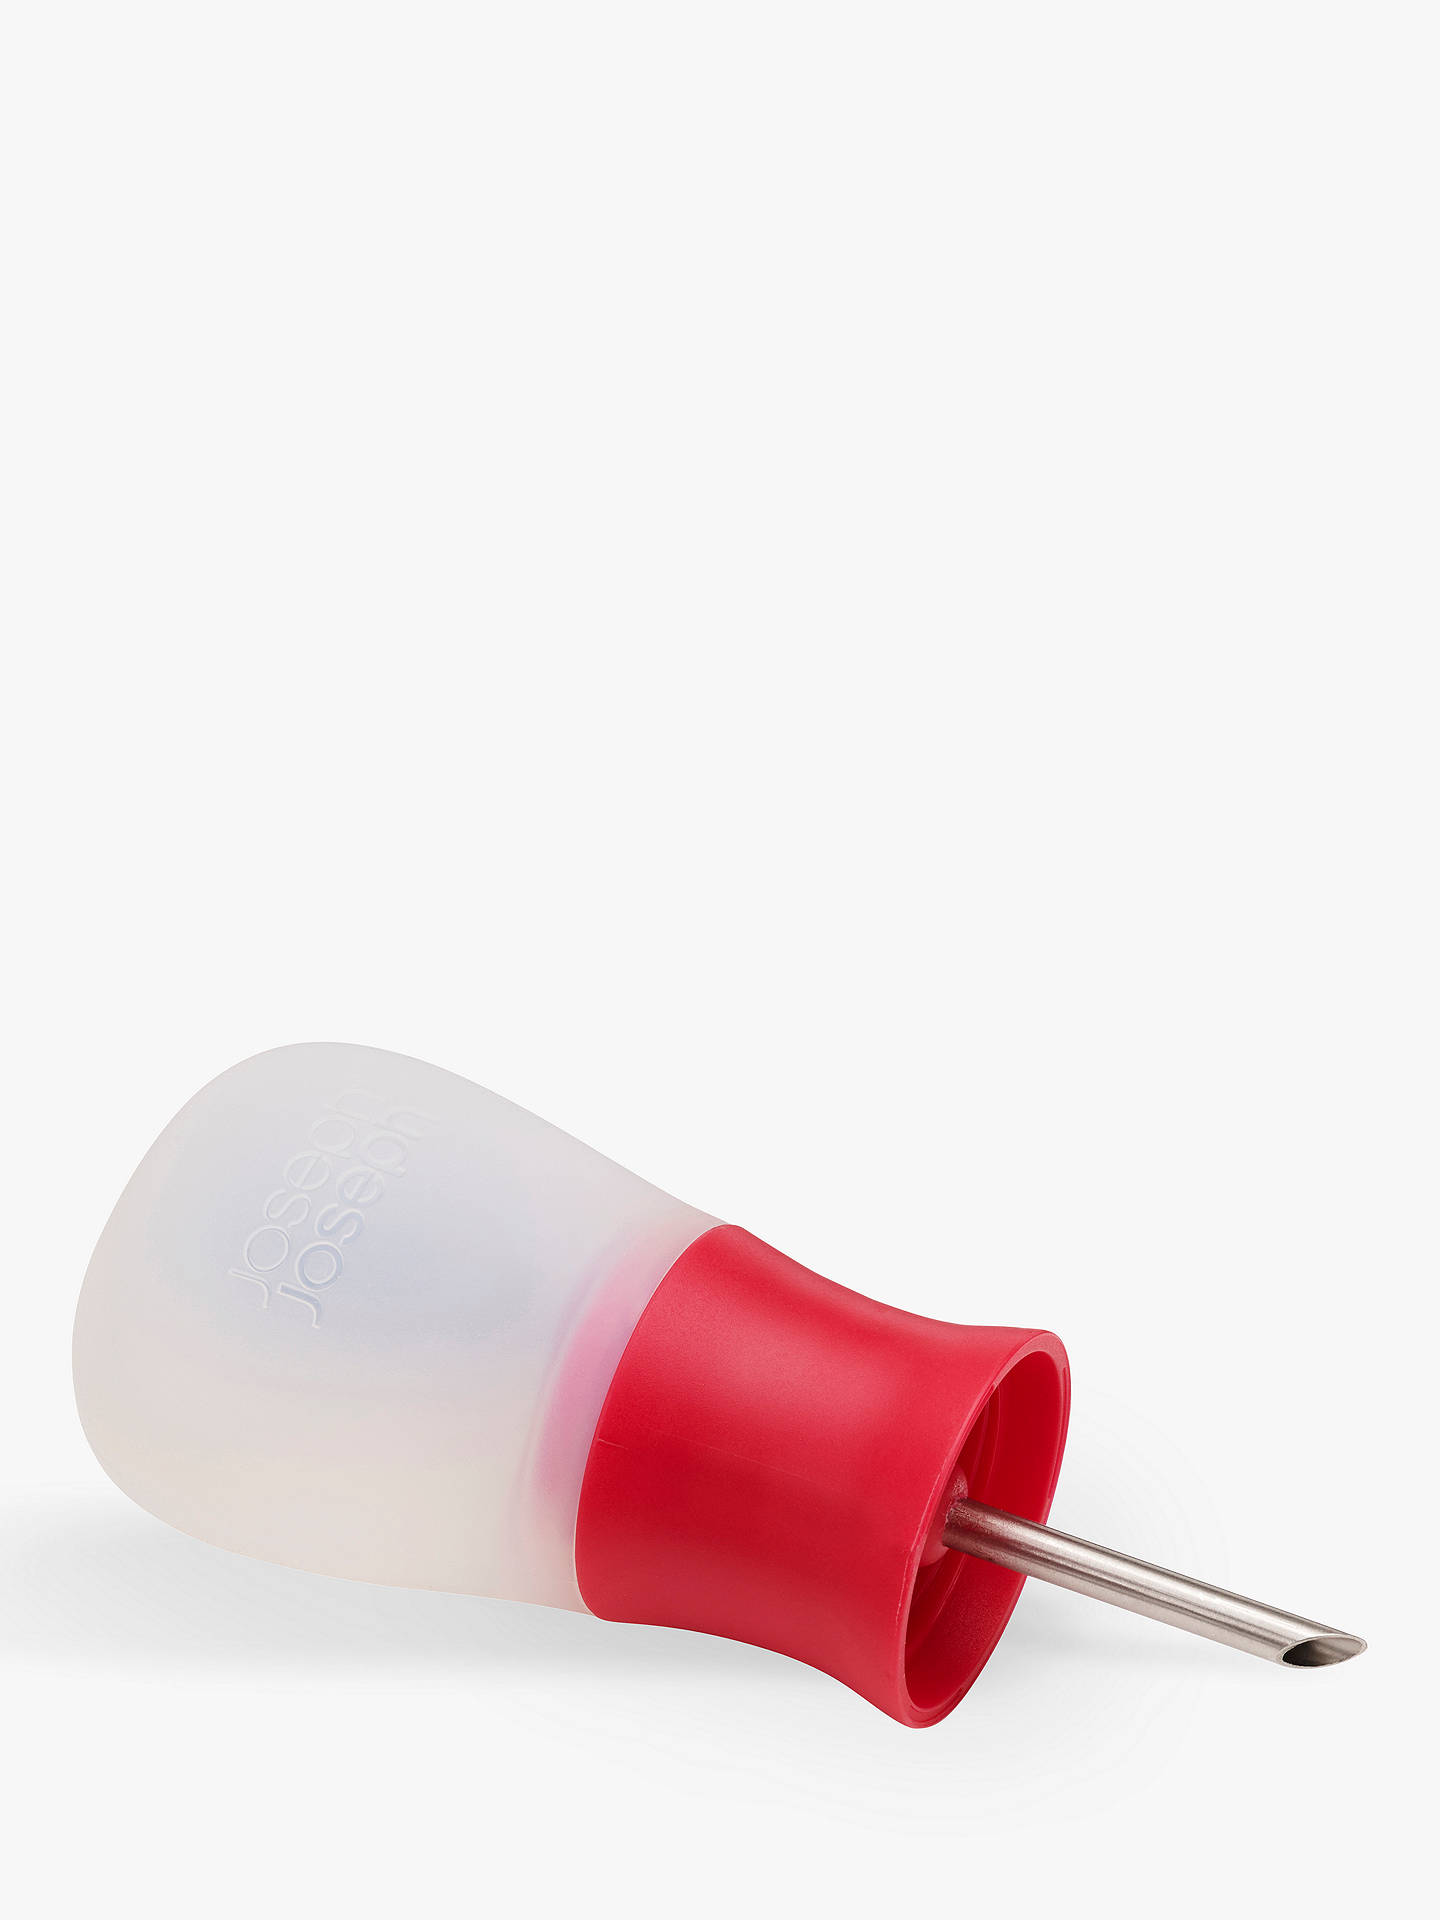 BuyJoseph Joseph Flavour Bud, Red Online at johnlewis.com